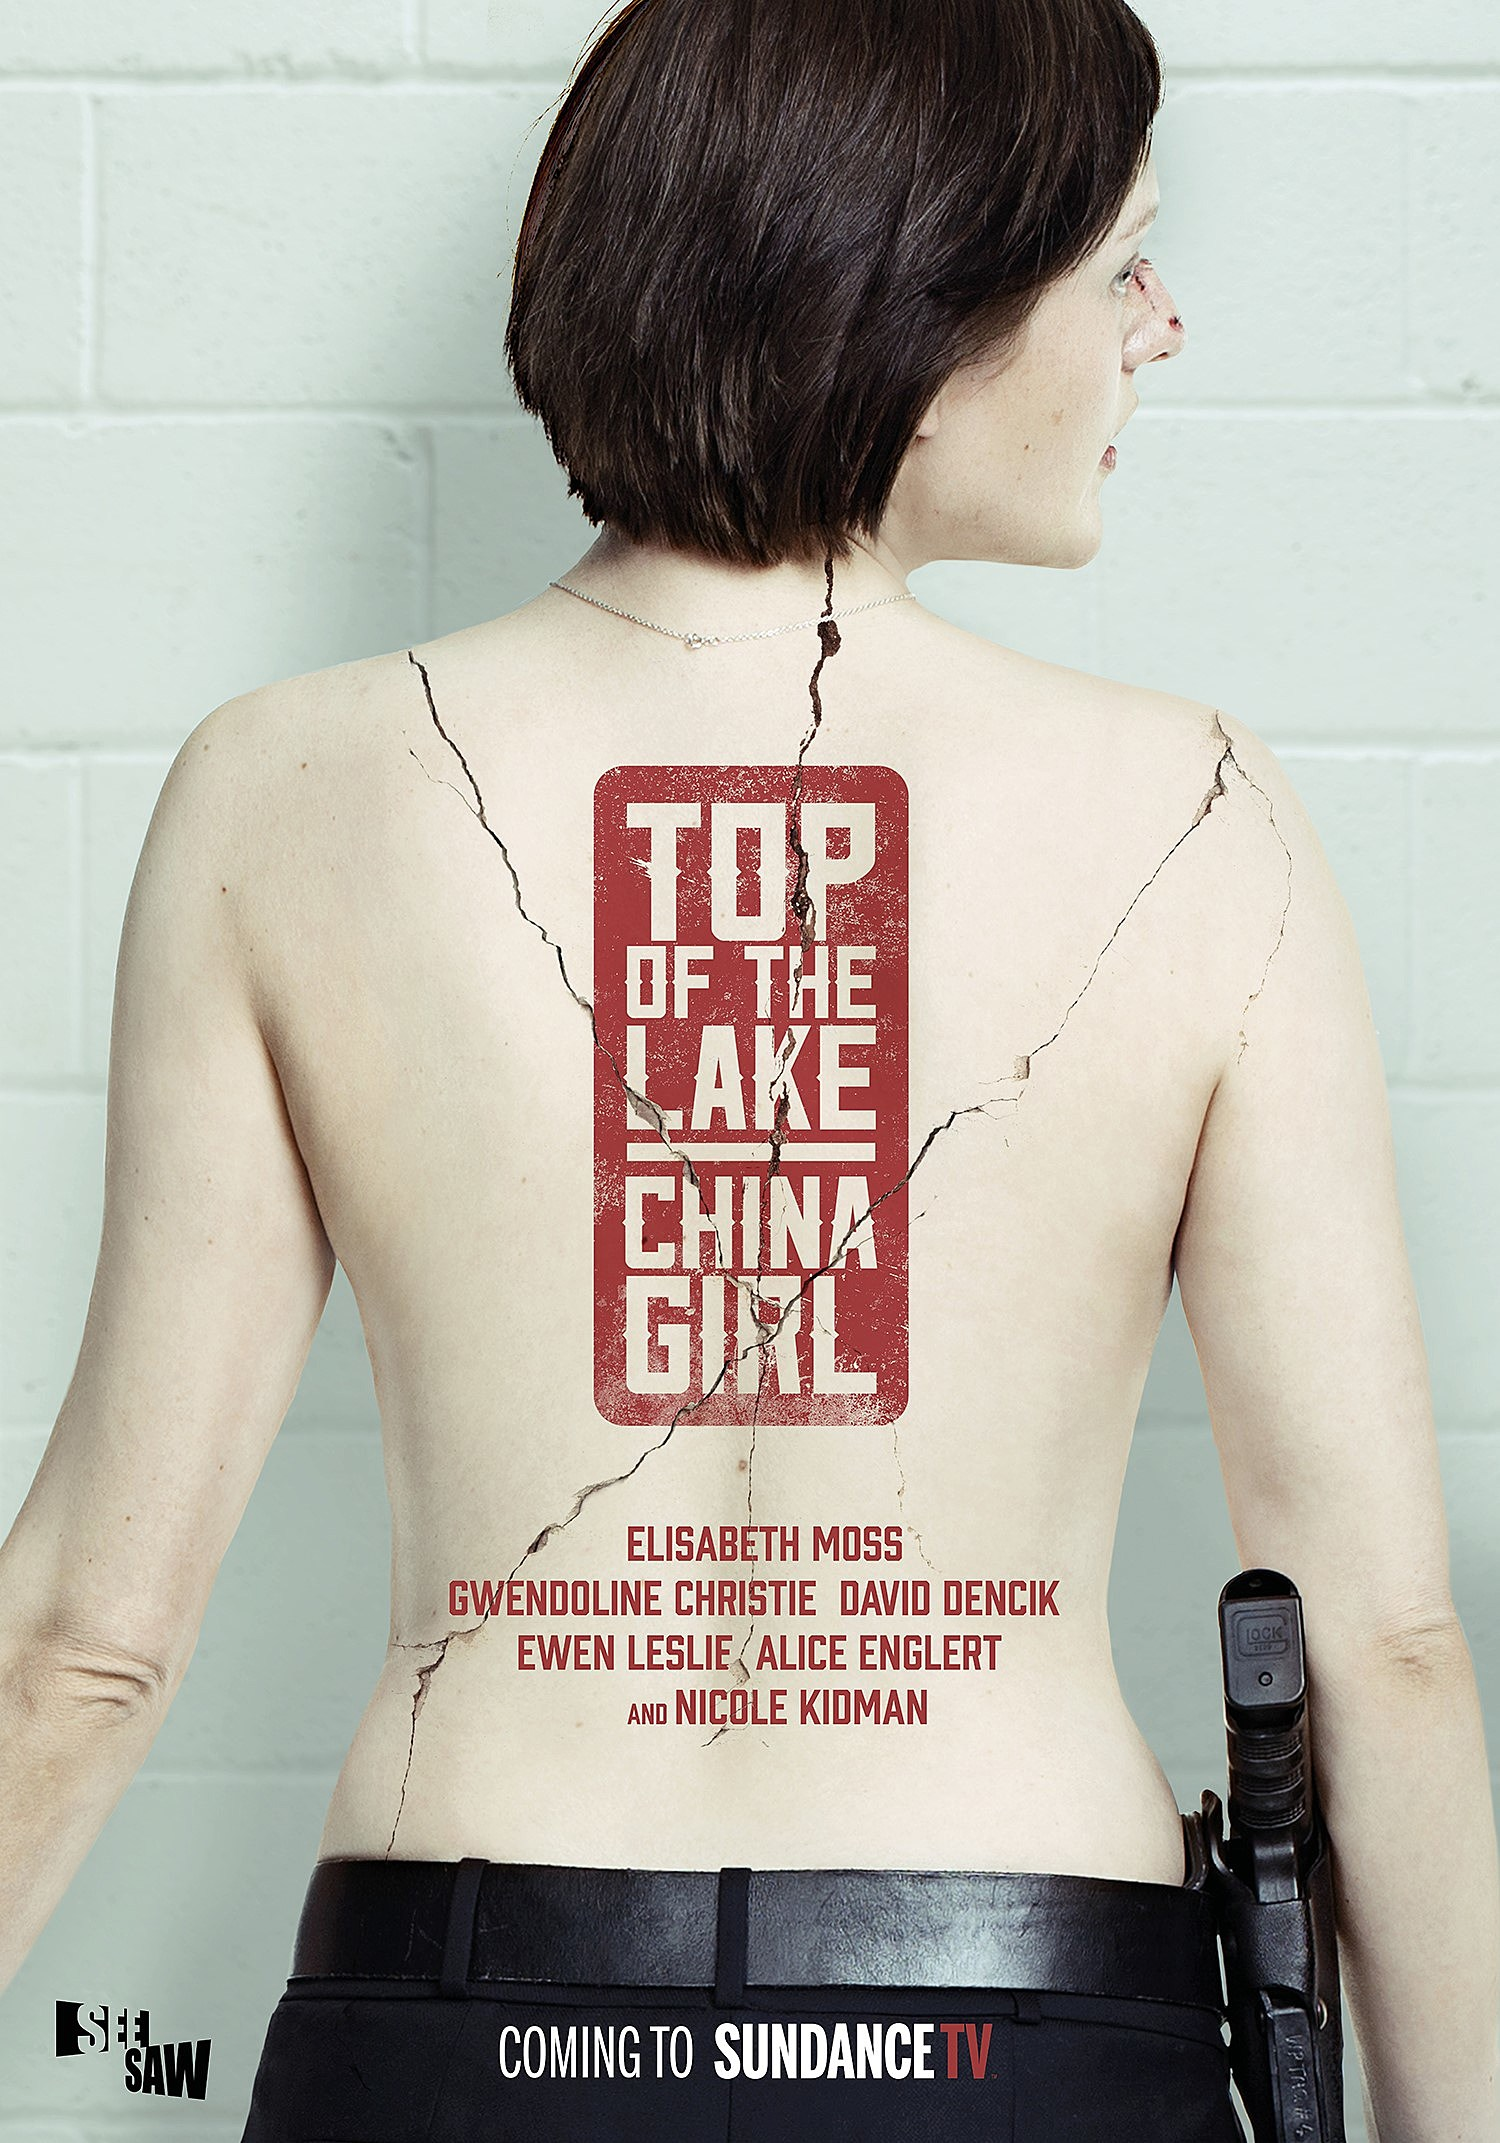 https://i1.wp.com/screencrush.com/files/2017/02/Top-of-the-Lake-China-Girl-Key-Art-pic.jpg